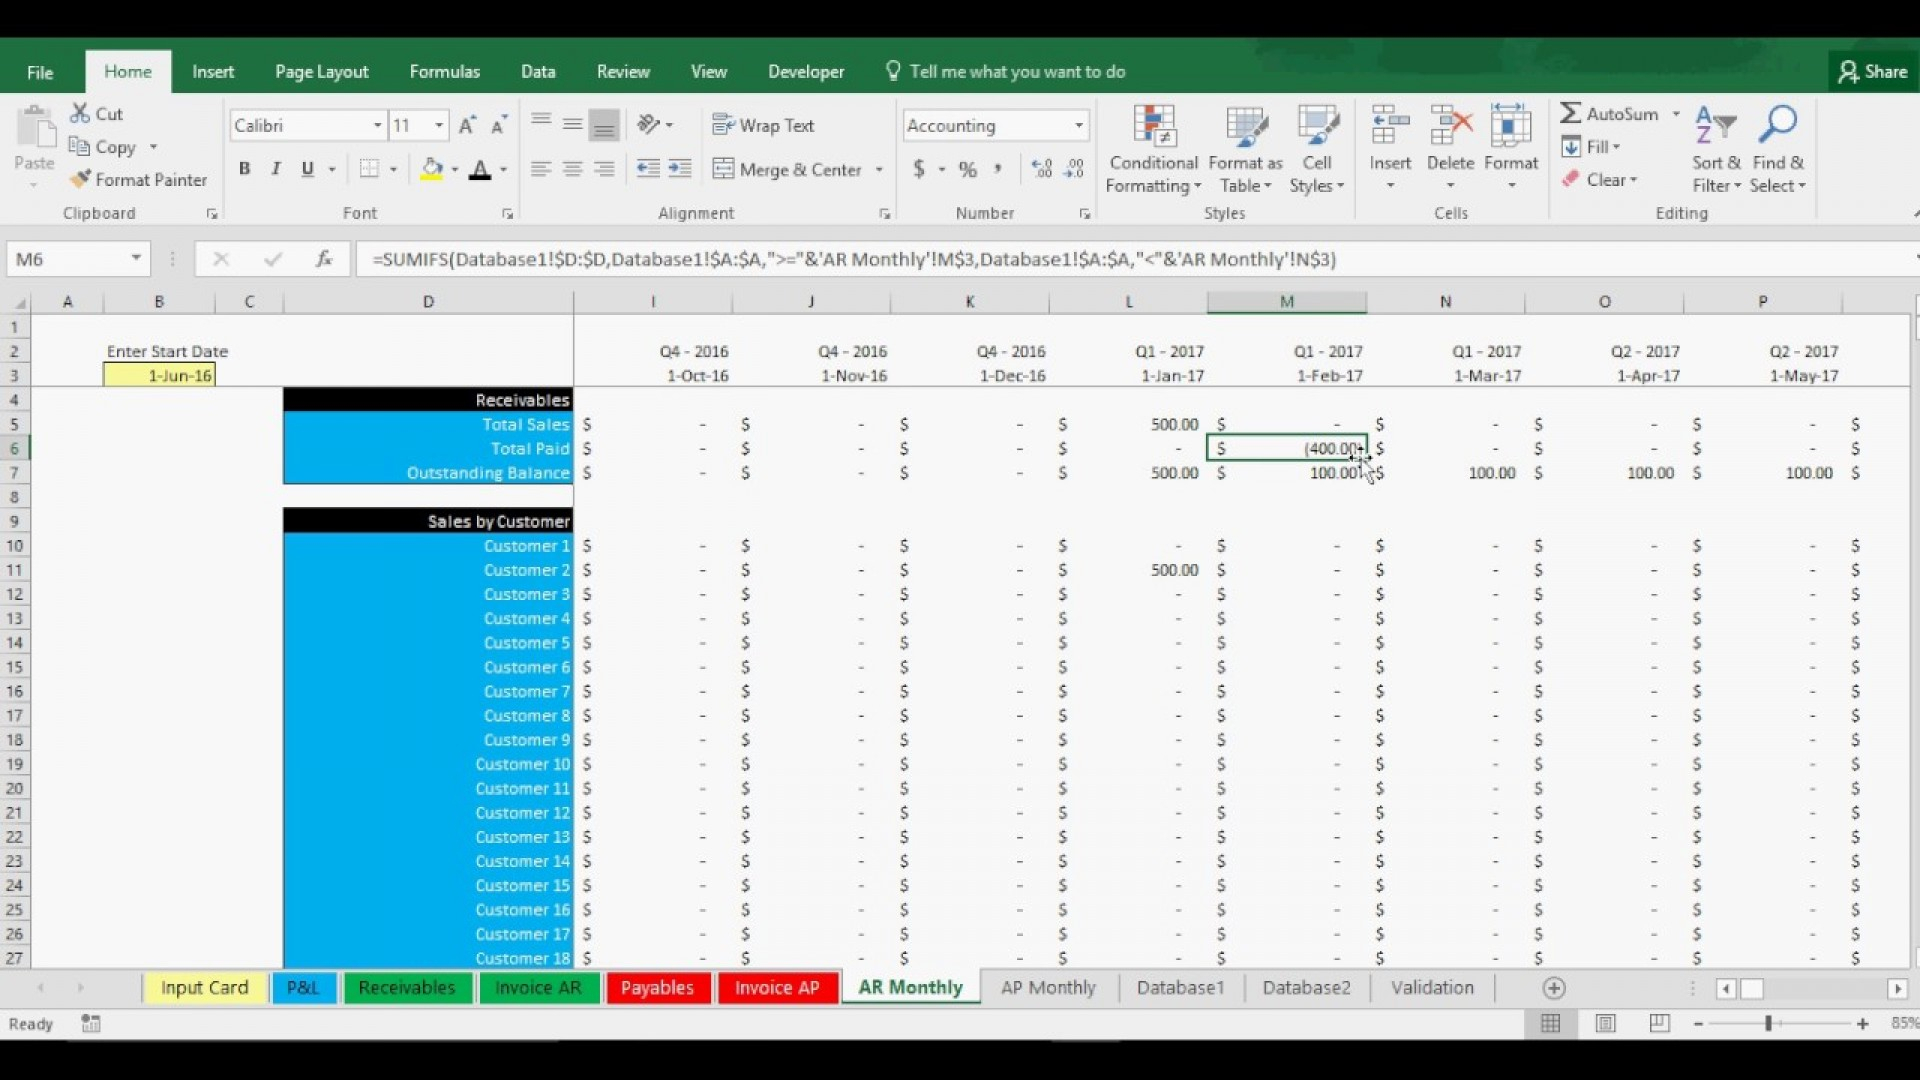 Accounts Payable Spreadsheet Template Free Throughout 015 Accounts Receivable Excel Spreadsheet Template Ideas Free